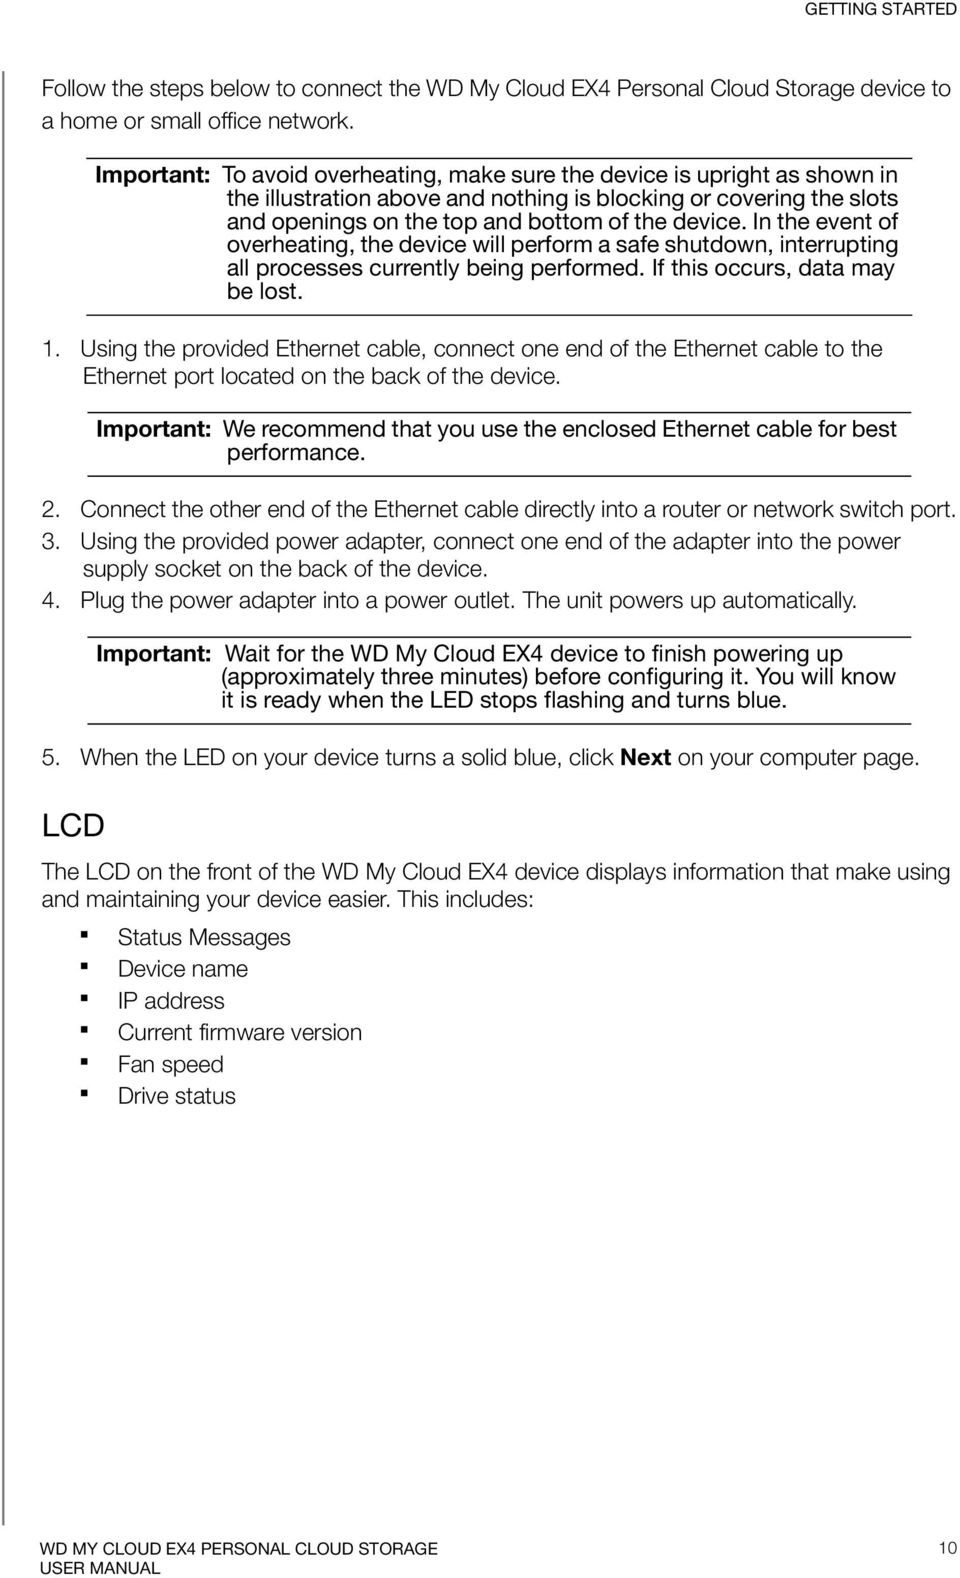 WD My Cloud EX4  Personal Cloud Storage User Manual - PDF